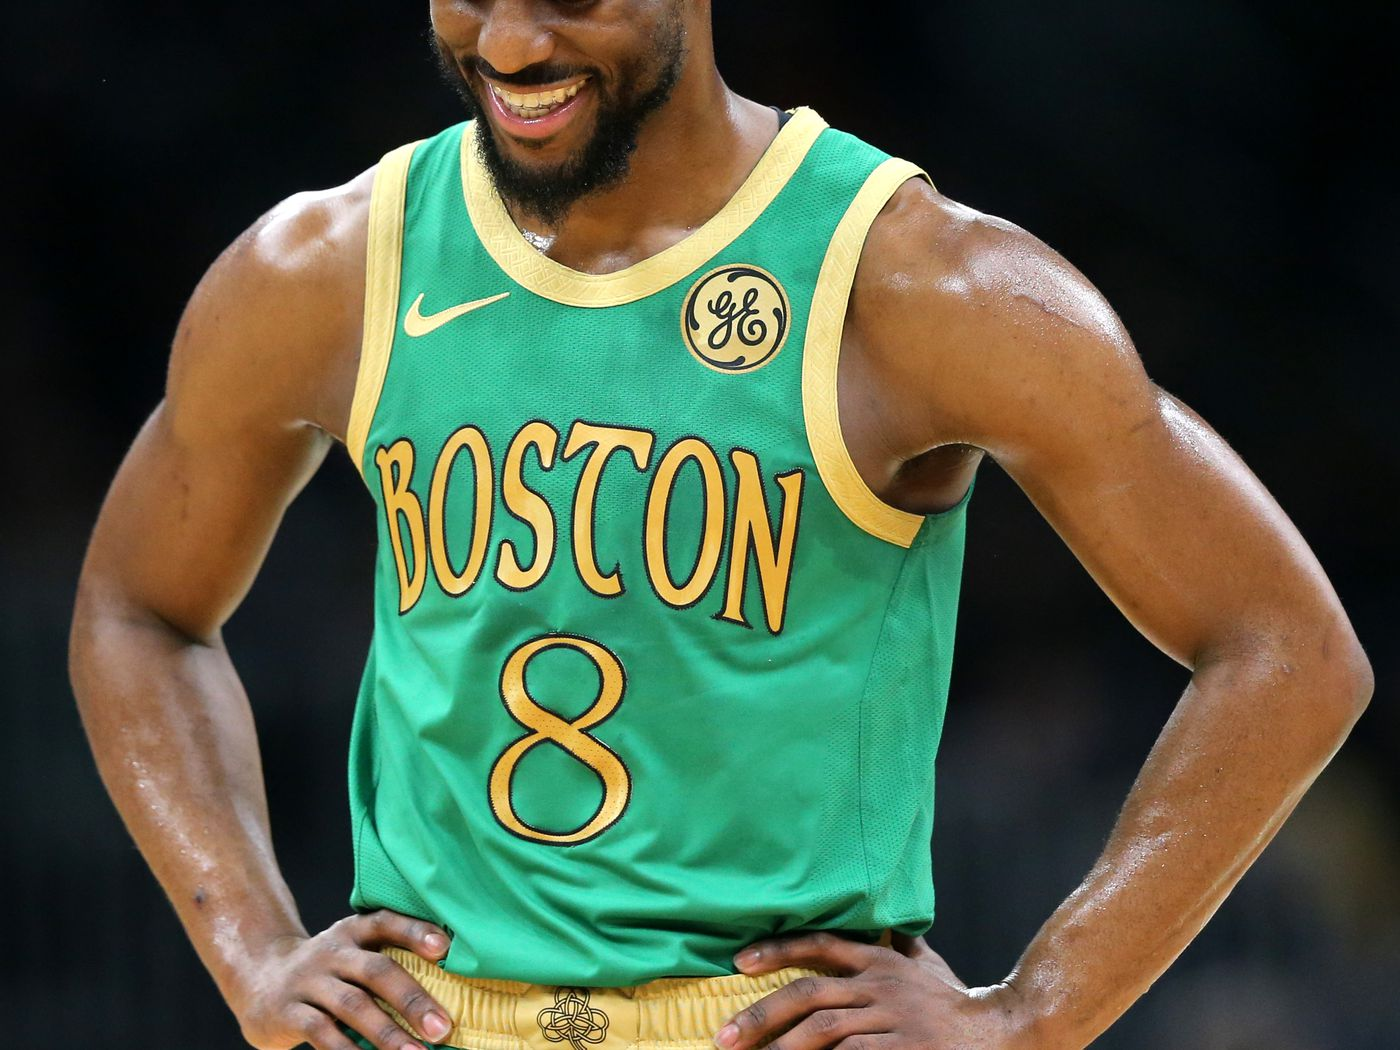 Brooklyn S Four Game Win Streak Halted By Kemba Walker And The Celtics 121 110 Netsdaily